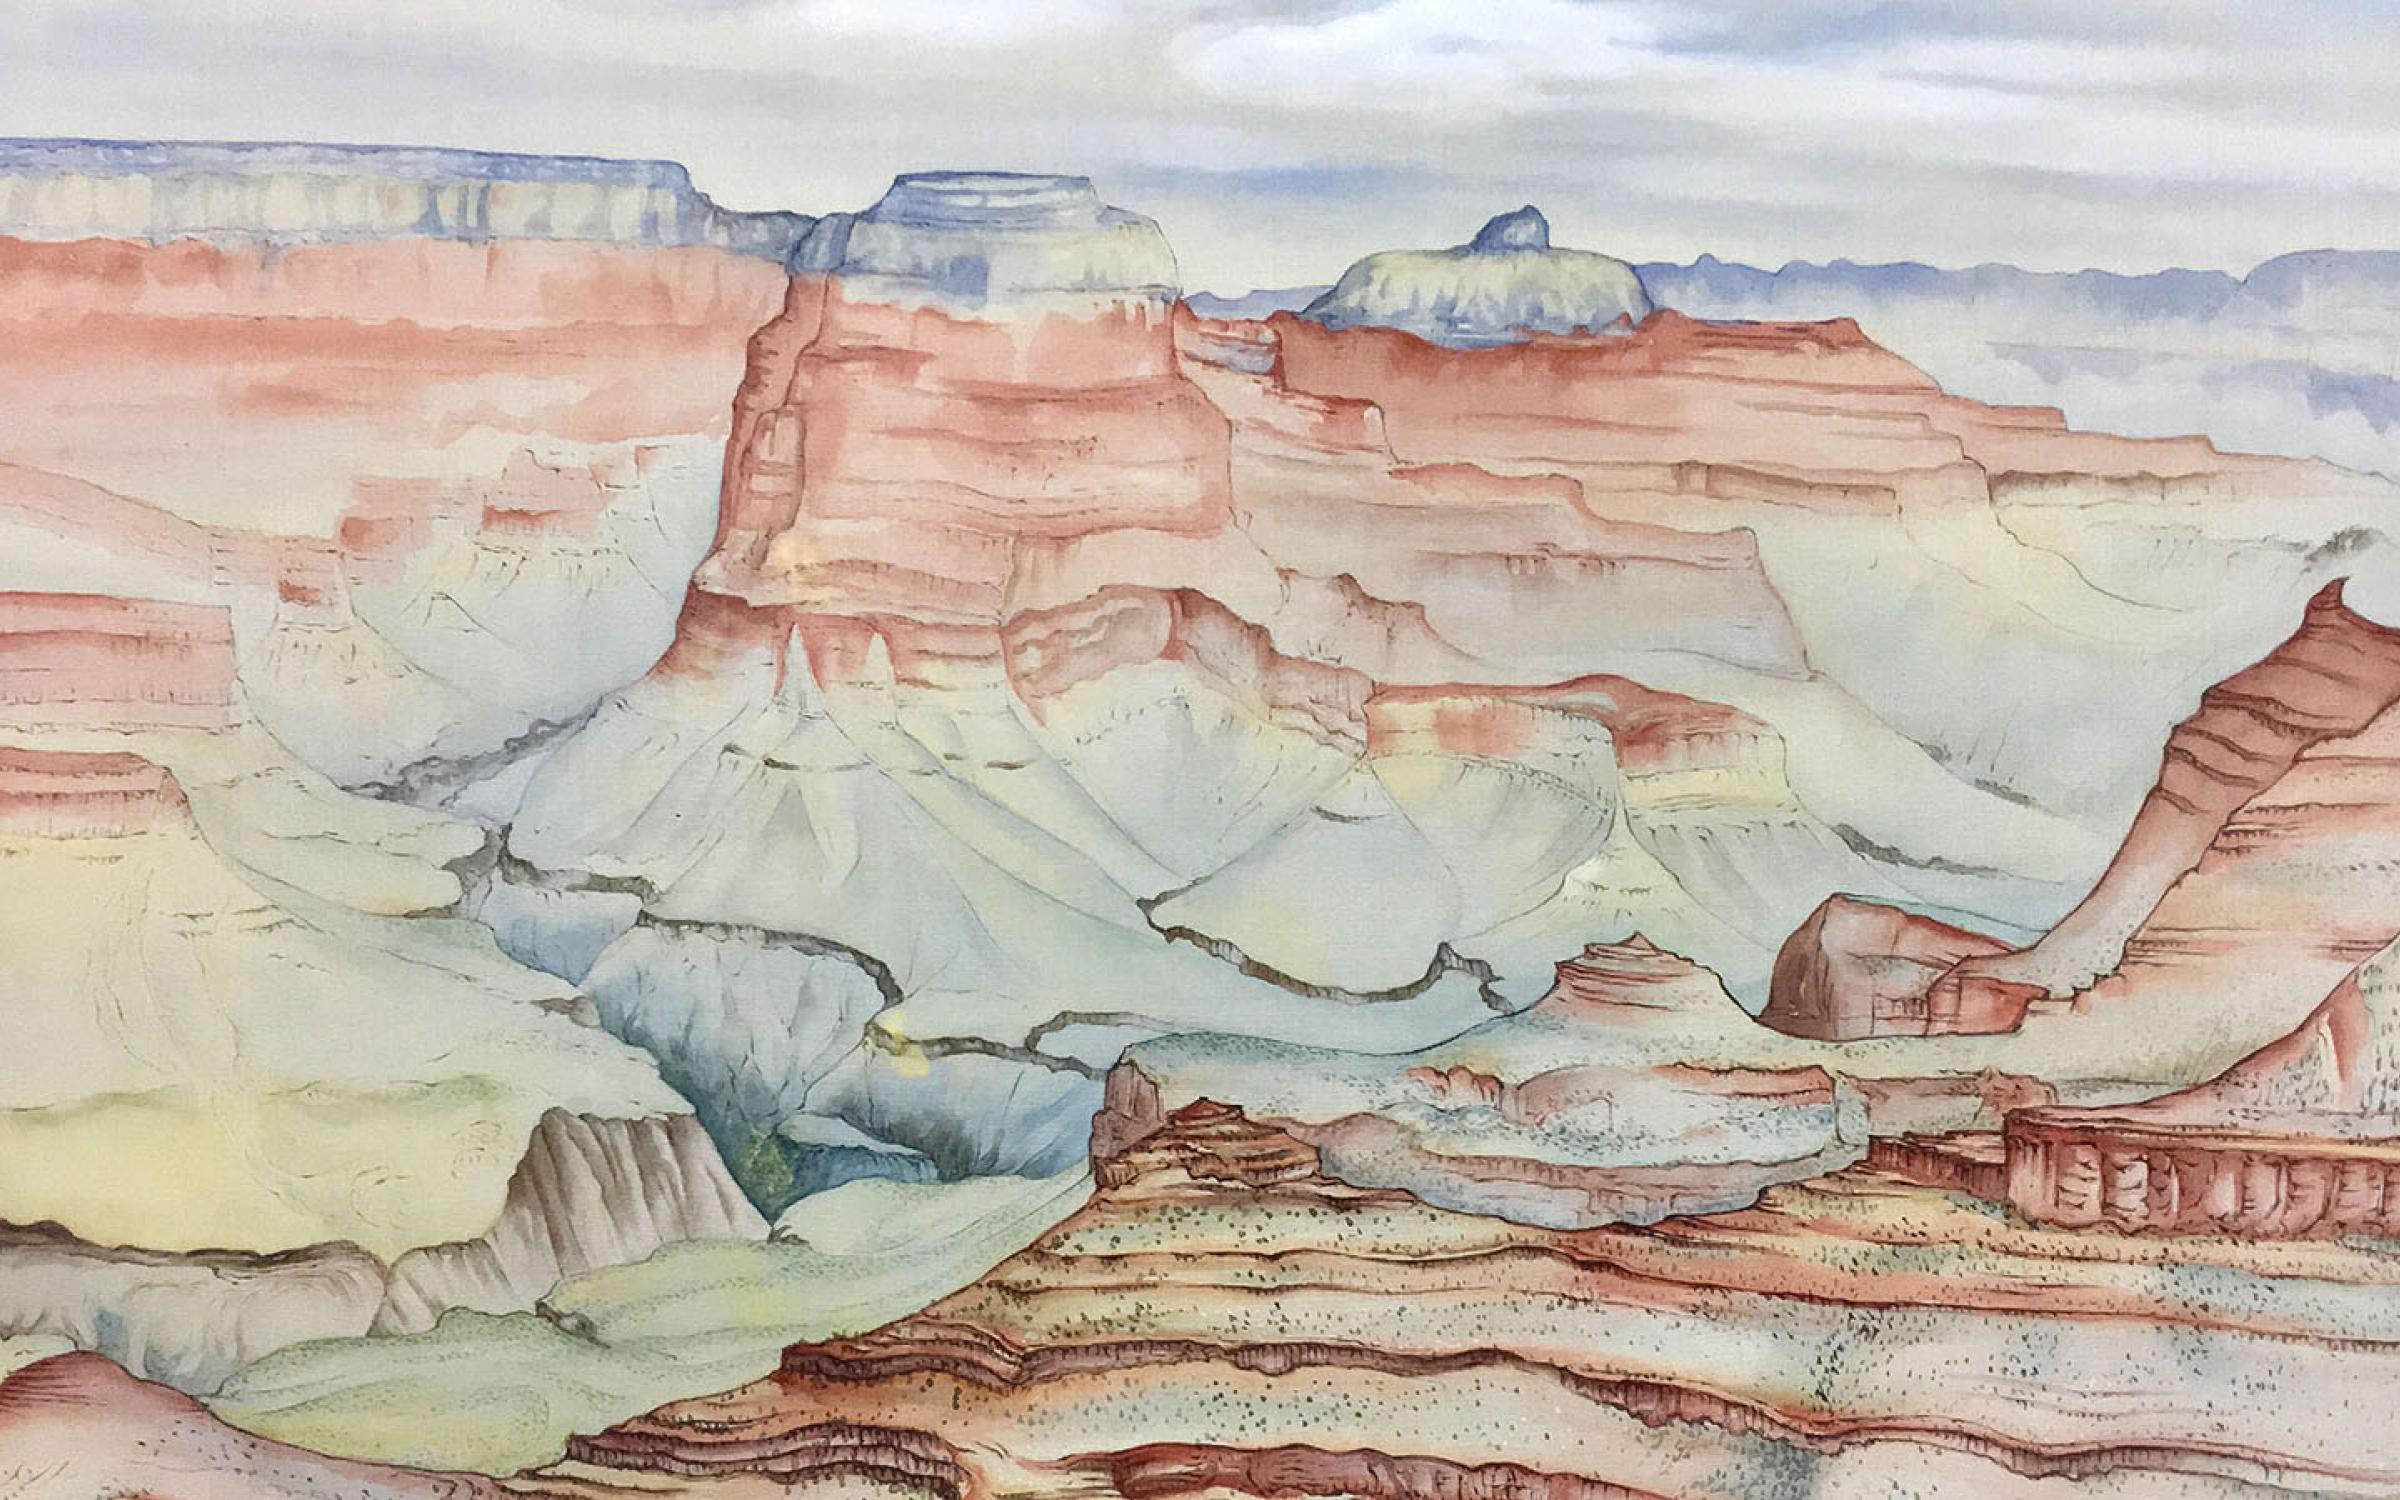 Chiura Obata (American, b. Japan, 1885–1975), Grand Canyon, May 15, 1940, watercolor on silk, 17 1/2 x 21 3/4 in., Amber and Richard Sakai Collection